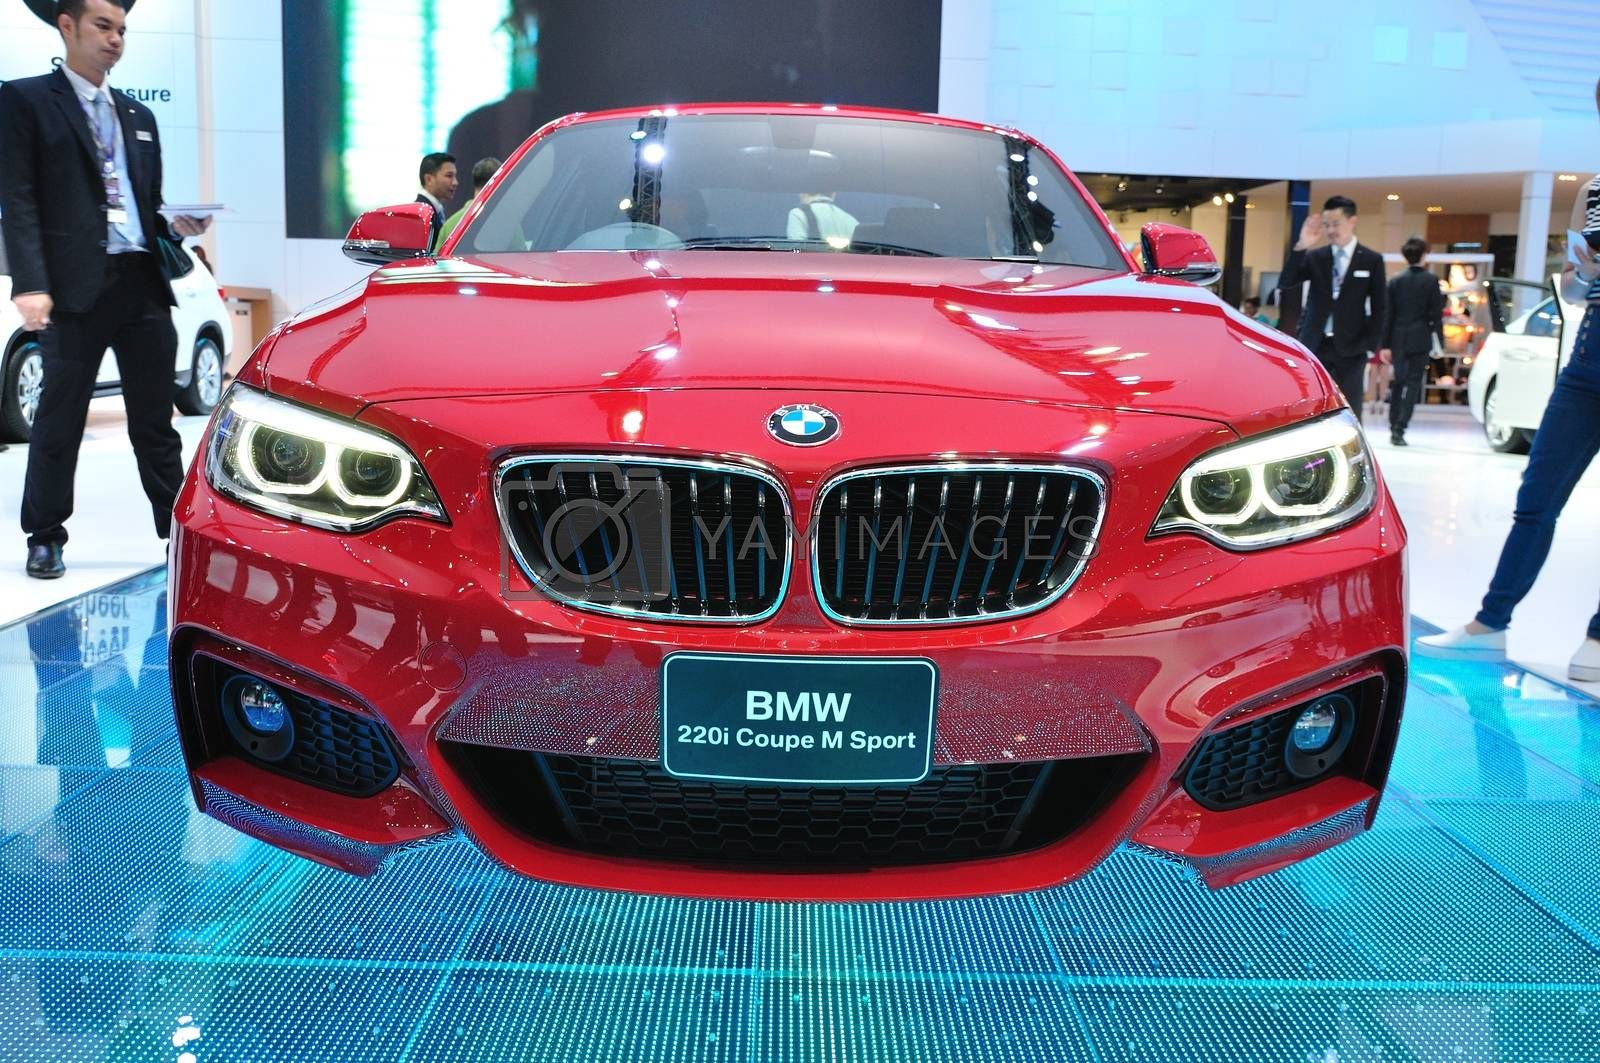 NONTHABURI - MARCH 25:NEW BM 220I coupe M sport on display at Th by thampapon